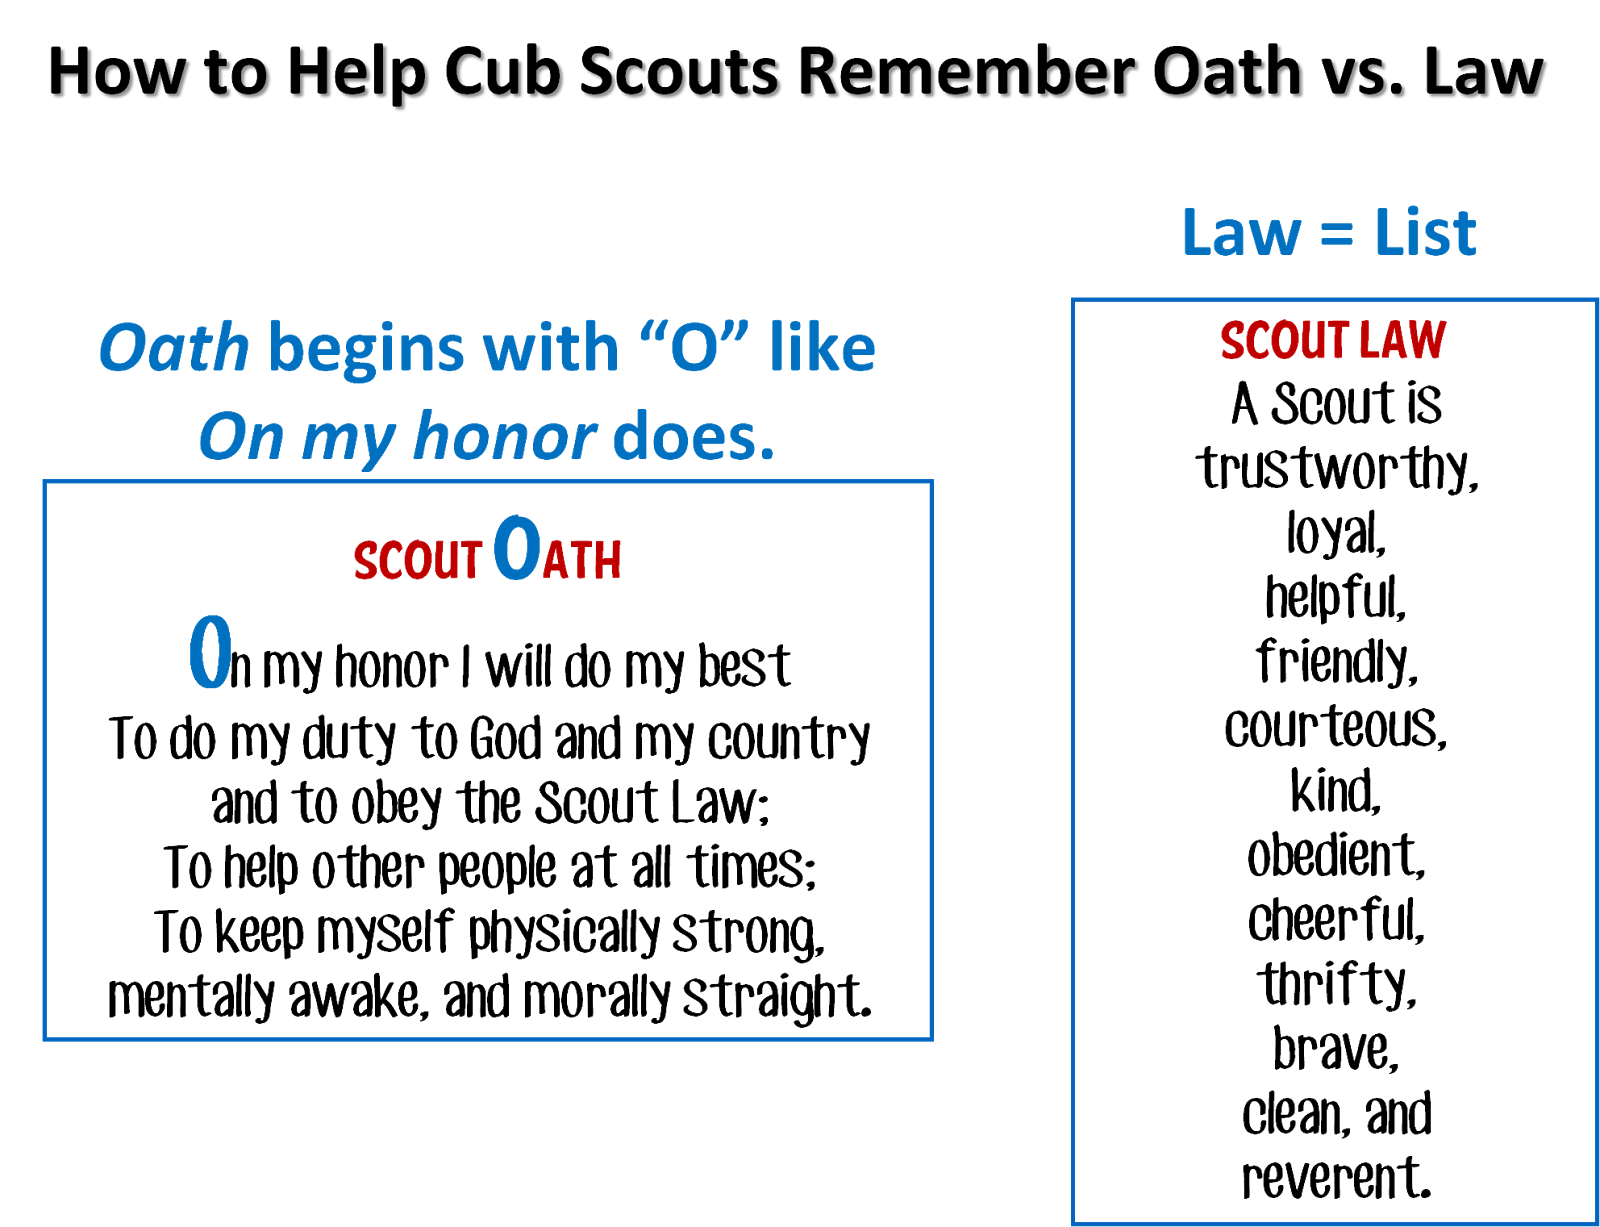 Obsessed image with regard to boy scout oath and law printable